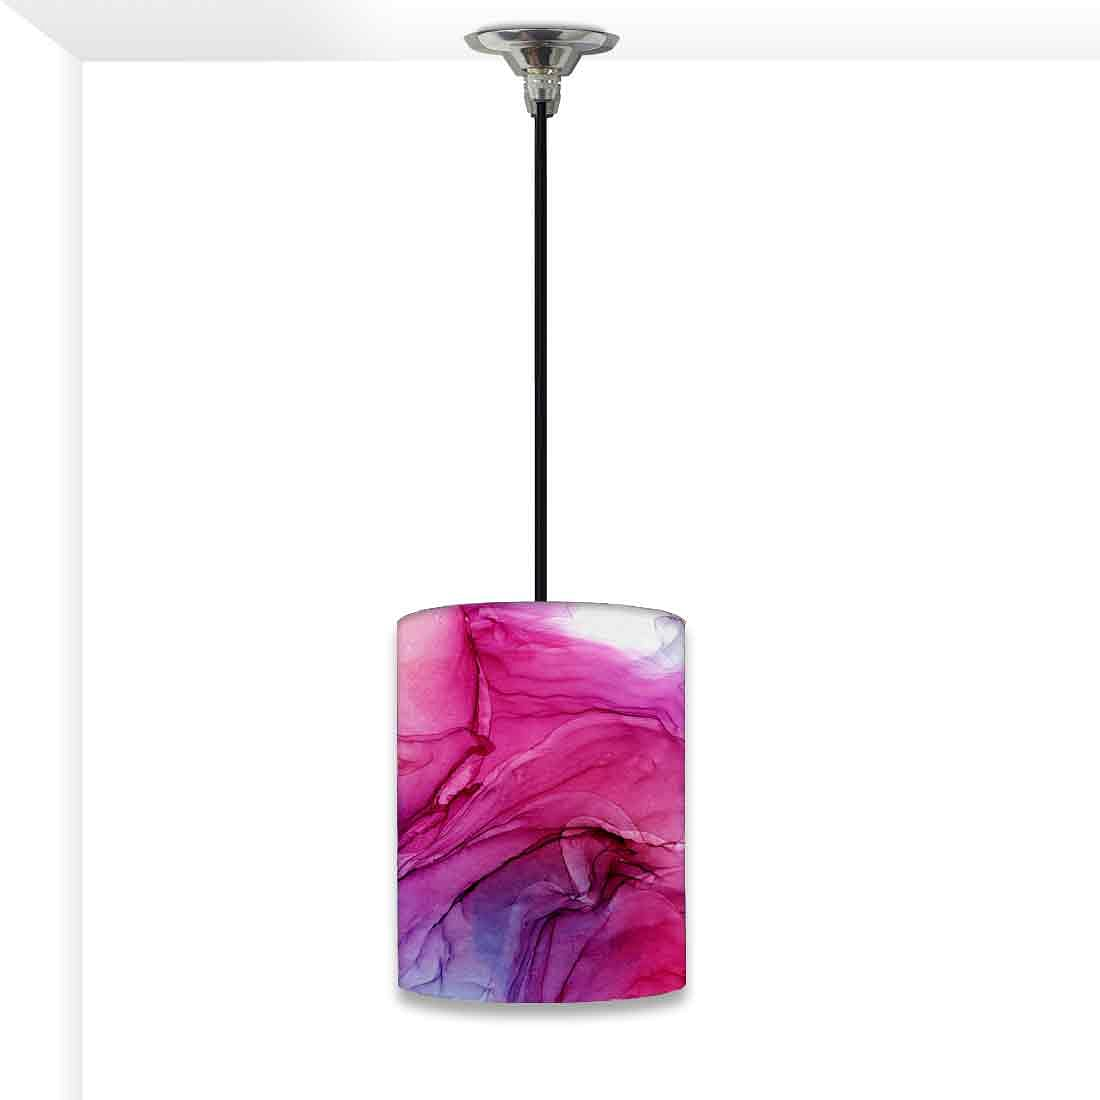 Ceiling Hanging Pendant Lamp Shade - Pink Multicolor Ink Watercolor